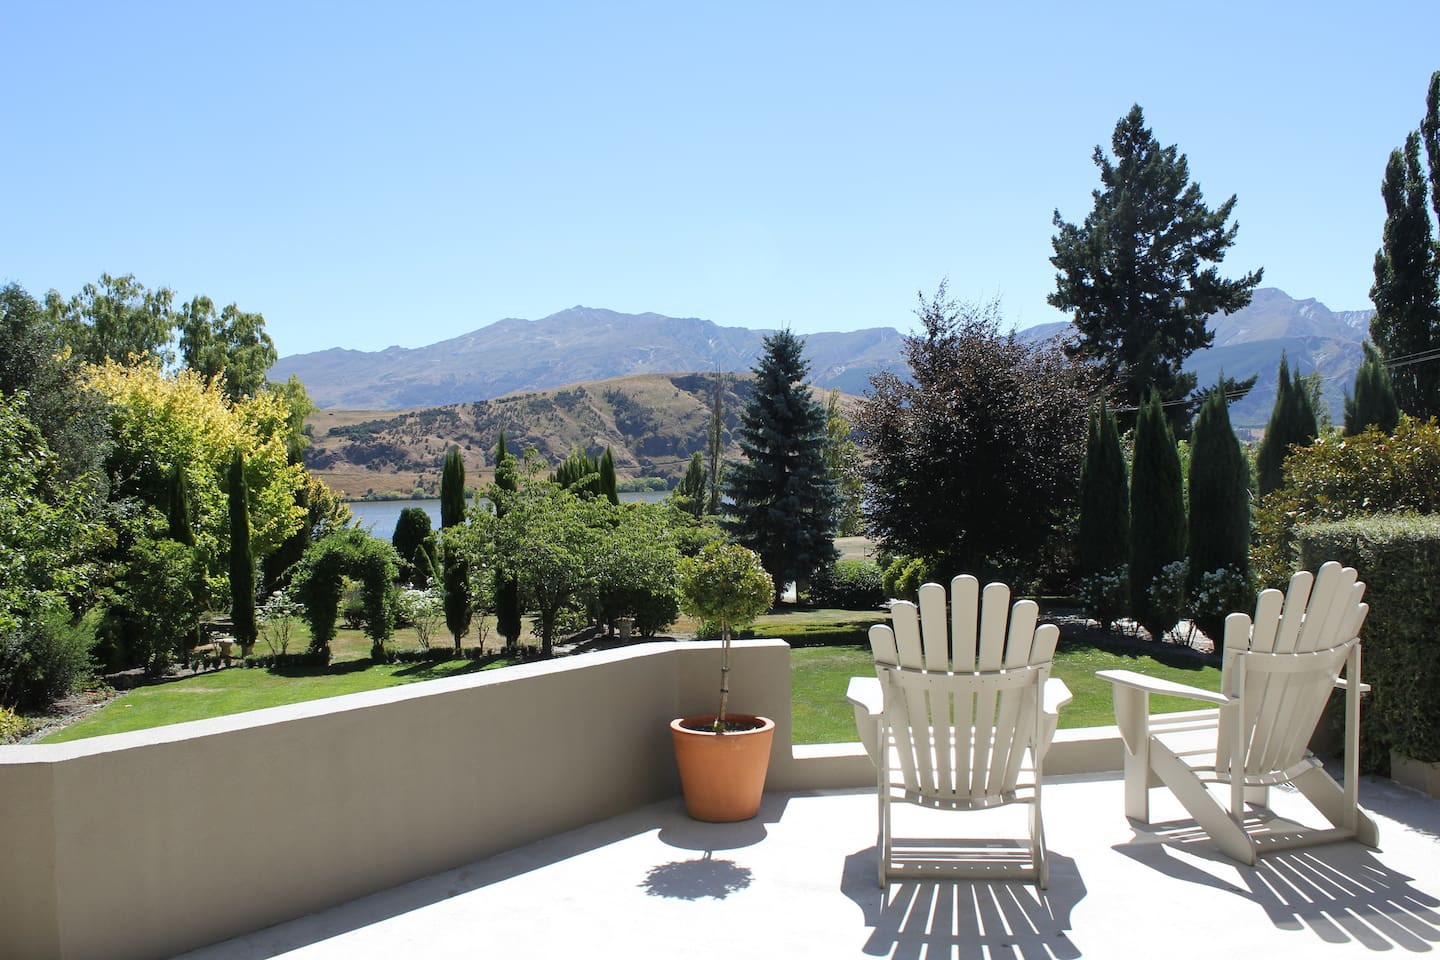 View from the Patio